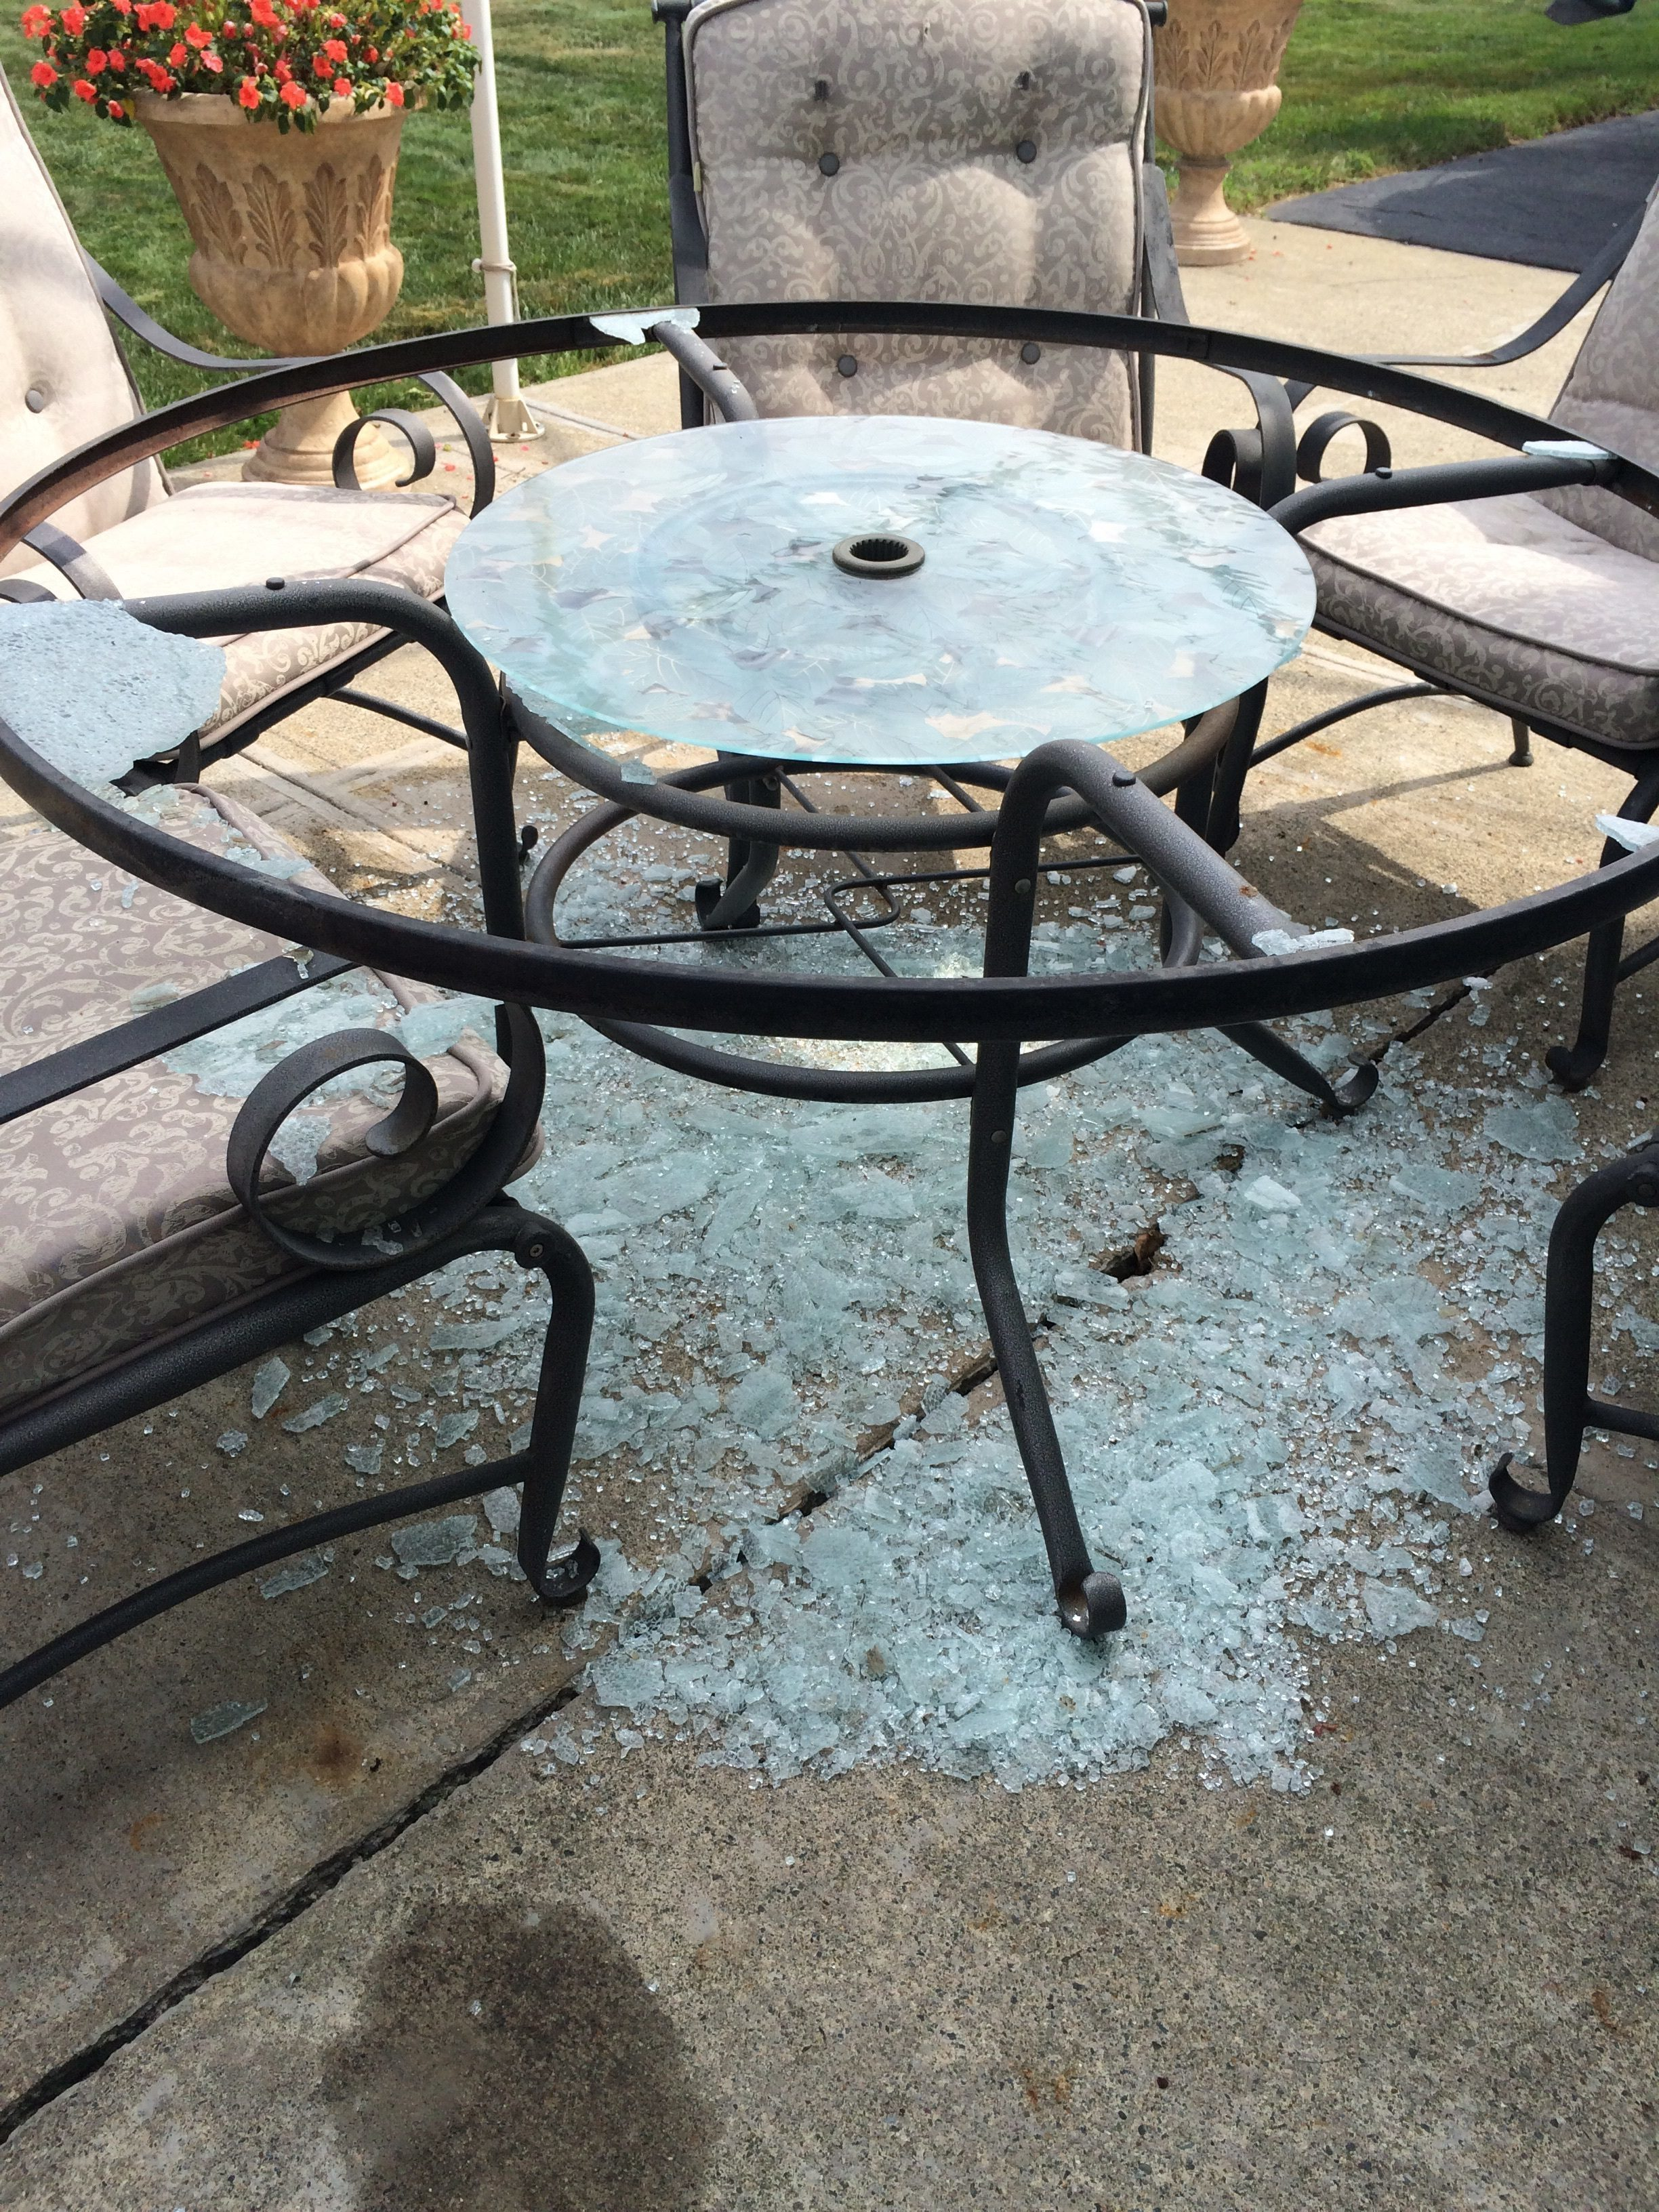 Left the house for about an hour and returned to find the patio table